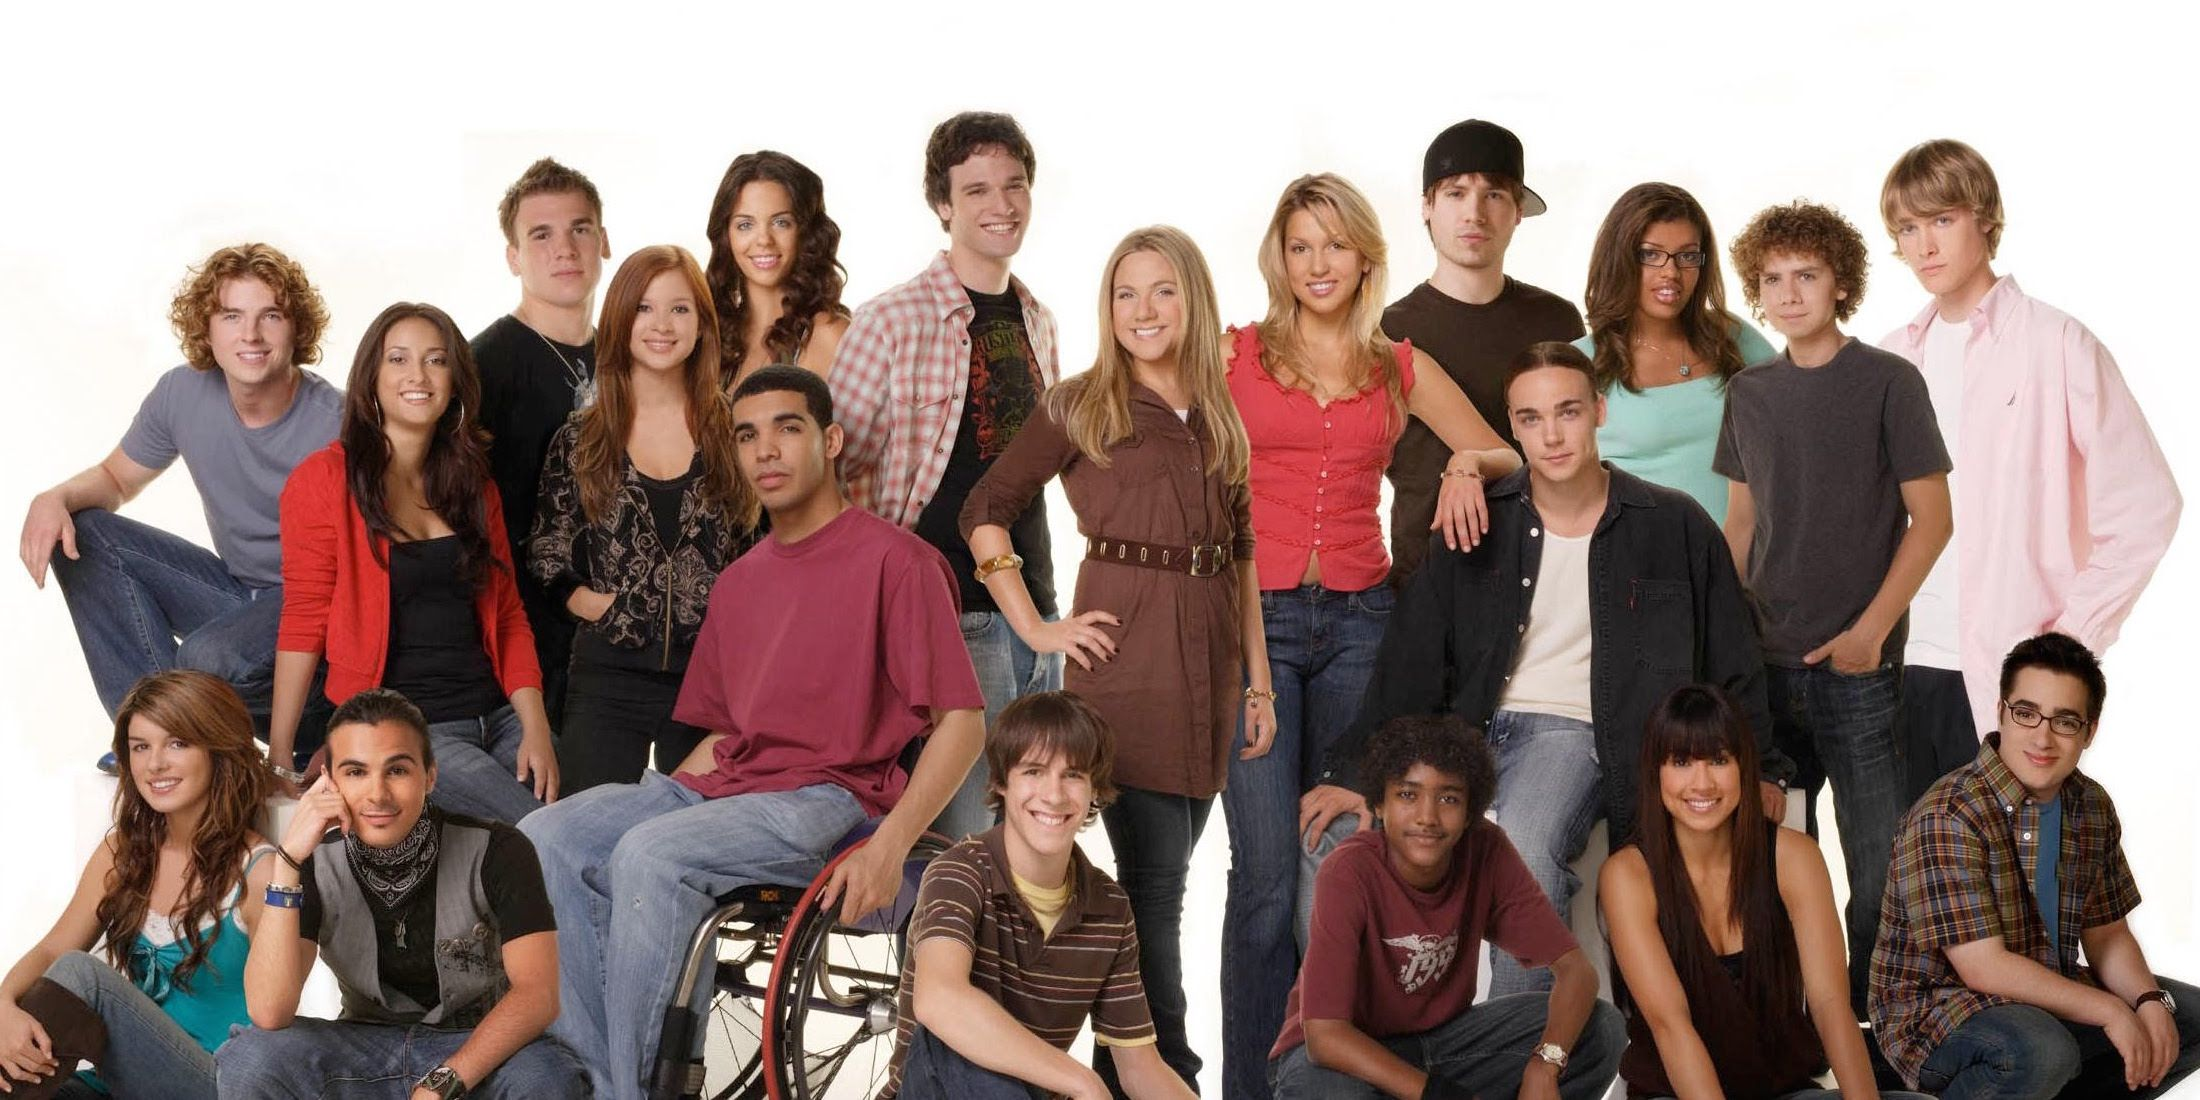 Degrassi cast dating in real life